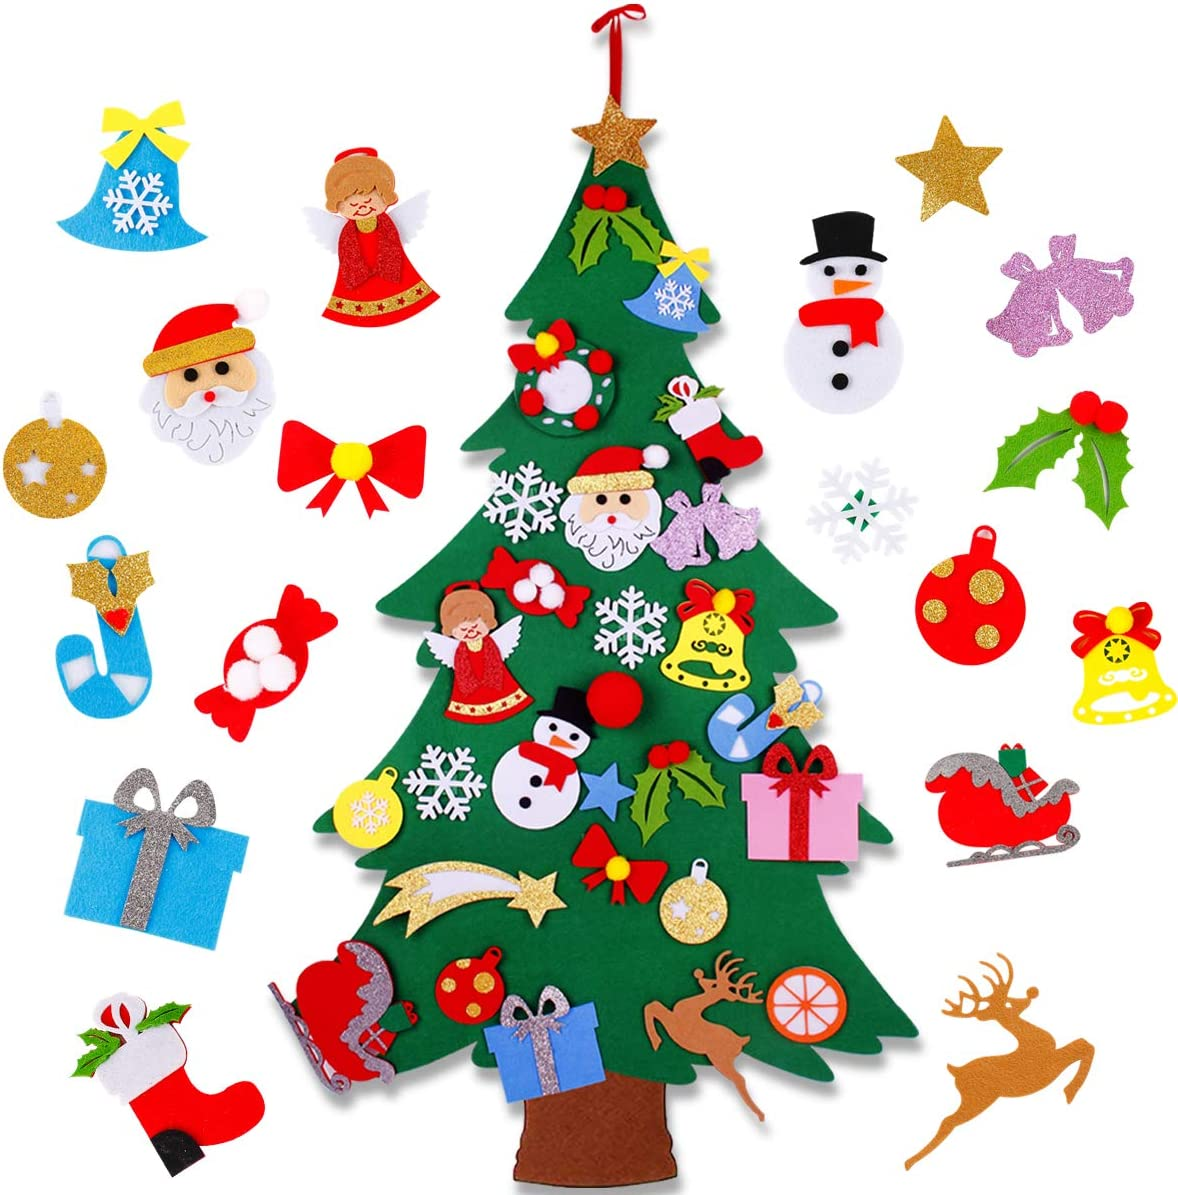 amazon com frigg diy felt christmas tree set with 25pcs ornaments for kids xmas gifts for 3 2ft wall hanging christmas ornaments kids new year handmade christmas decorations home kitchen frigg diy felt christmas tree set with 25pcs ornaments for kids xmas gifts for 3 2ft wall hanging christmas ornaments kids new year handmade